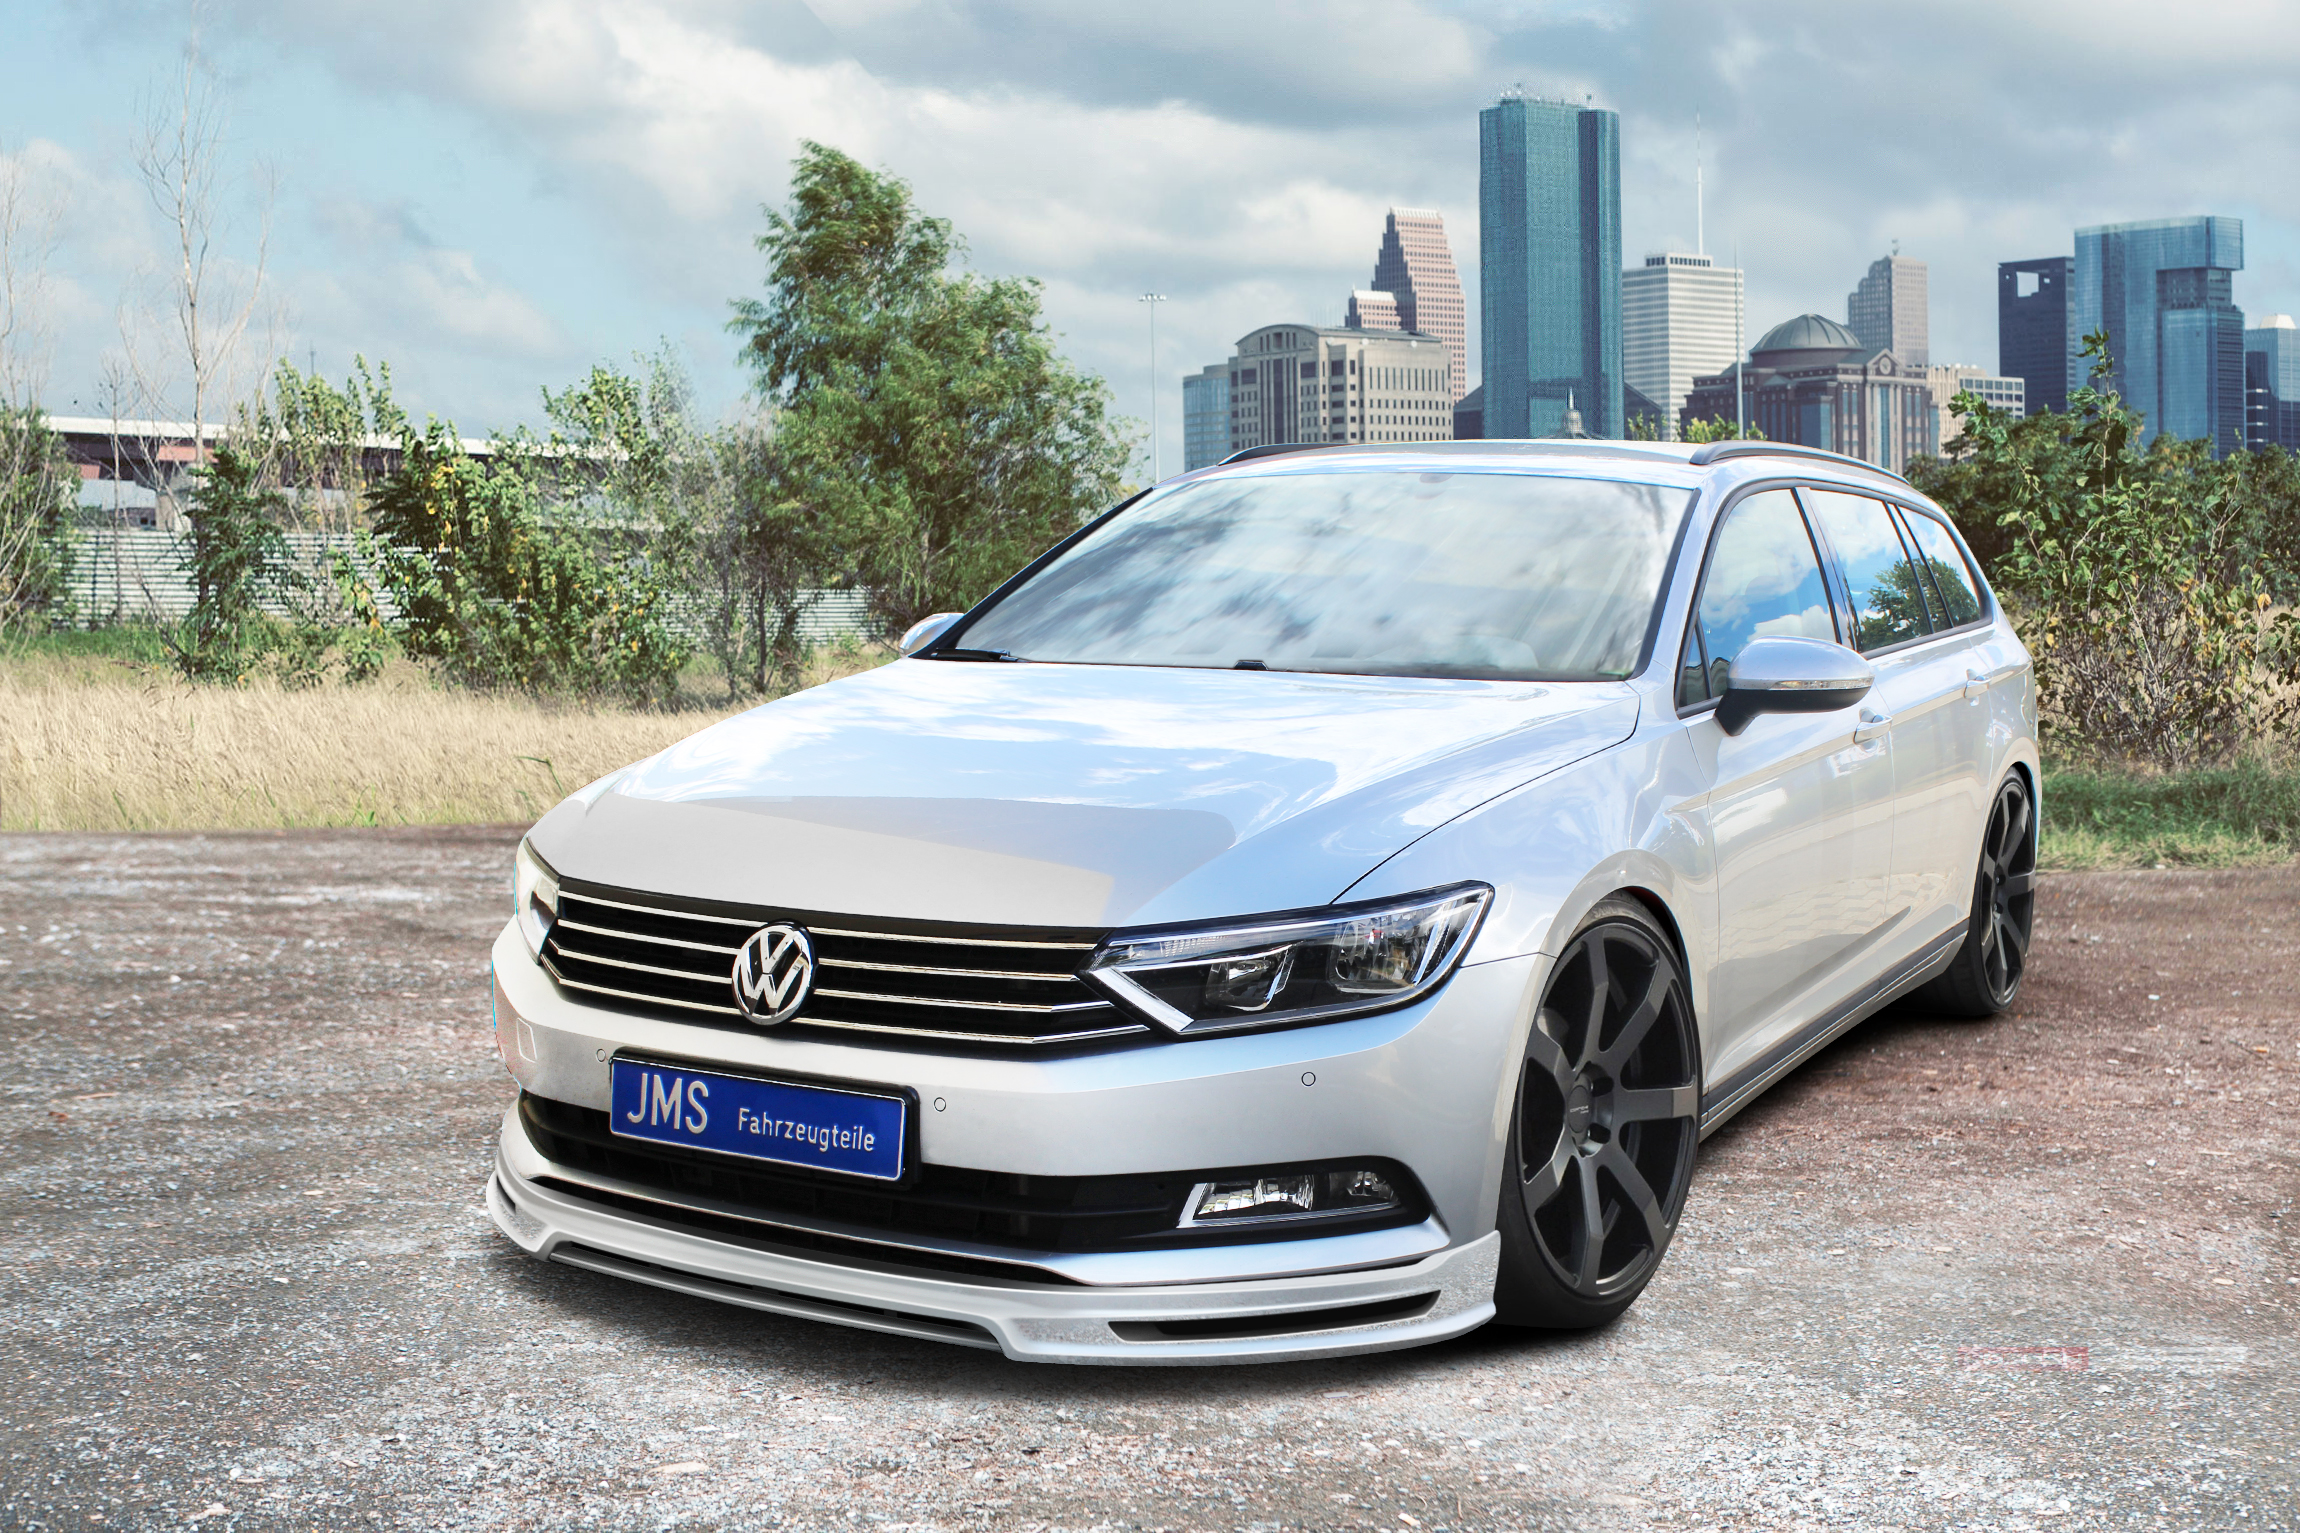 2015 volkswagen passat b8 tuned by jms fahrzeugteile damnedwerk. Black Bedroom Furniture Sets. Home Design Ideas